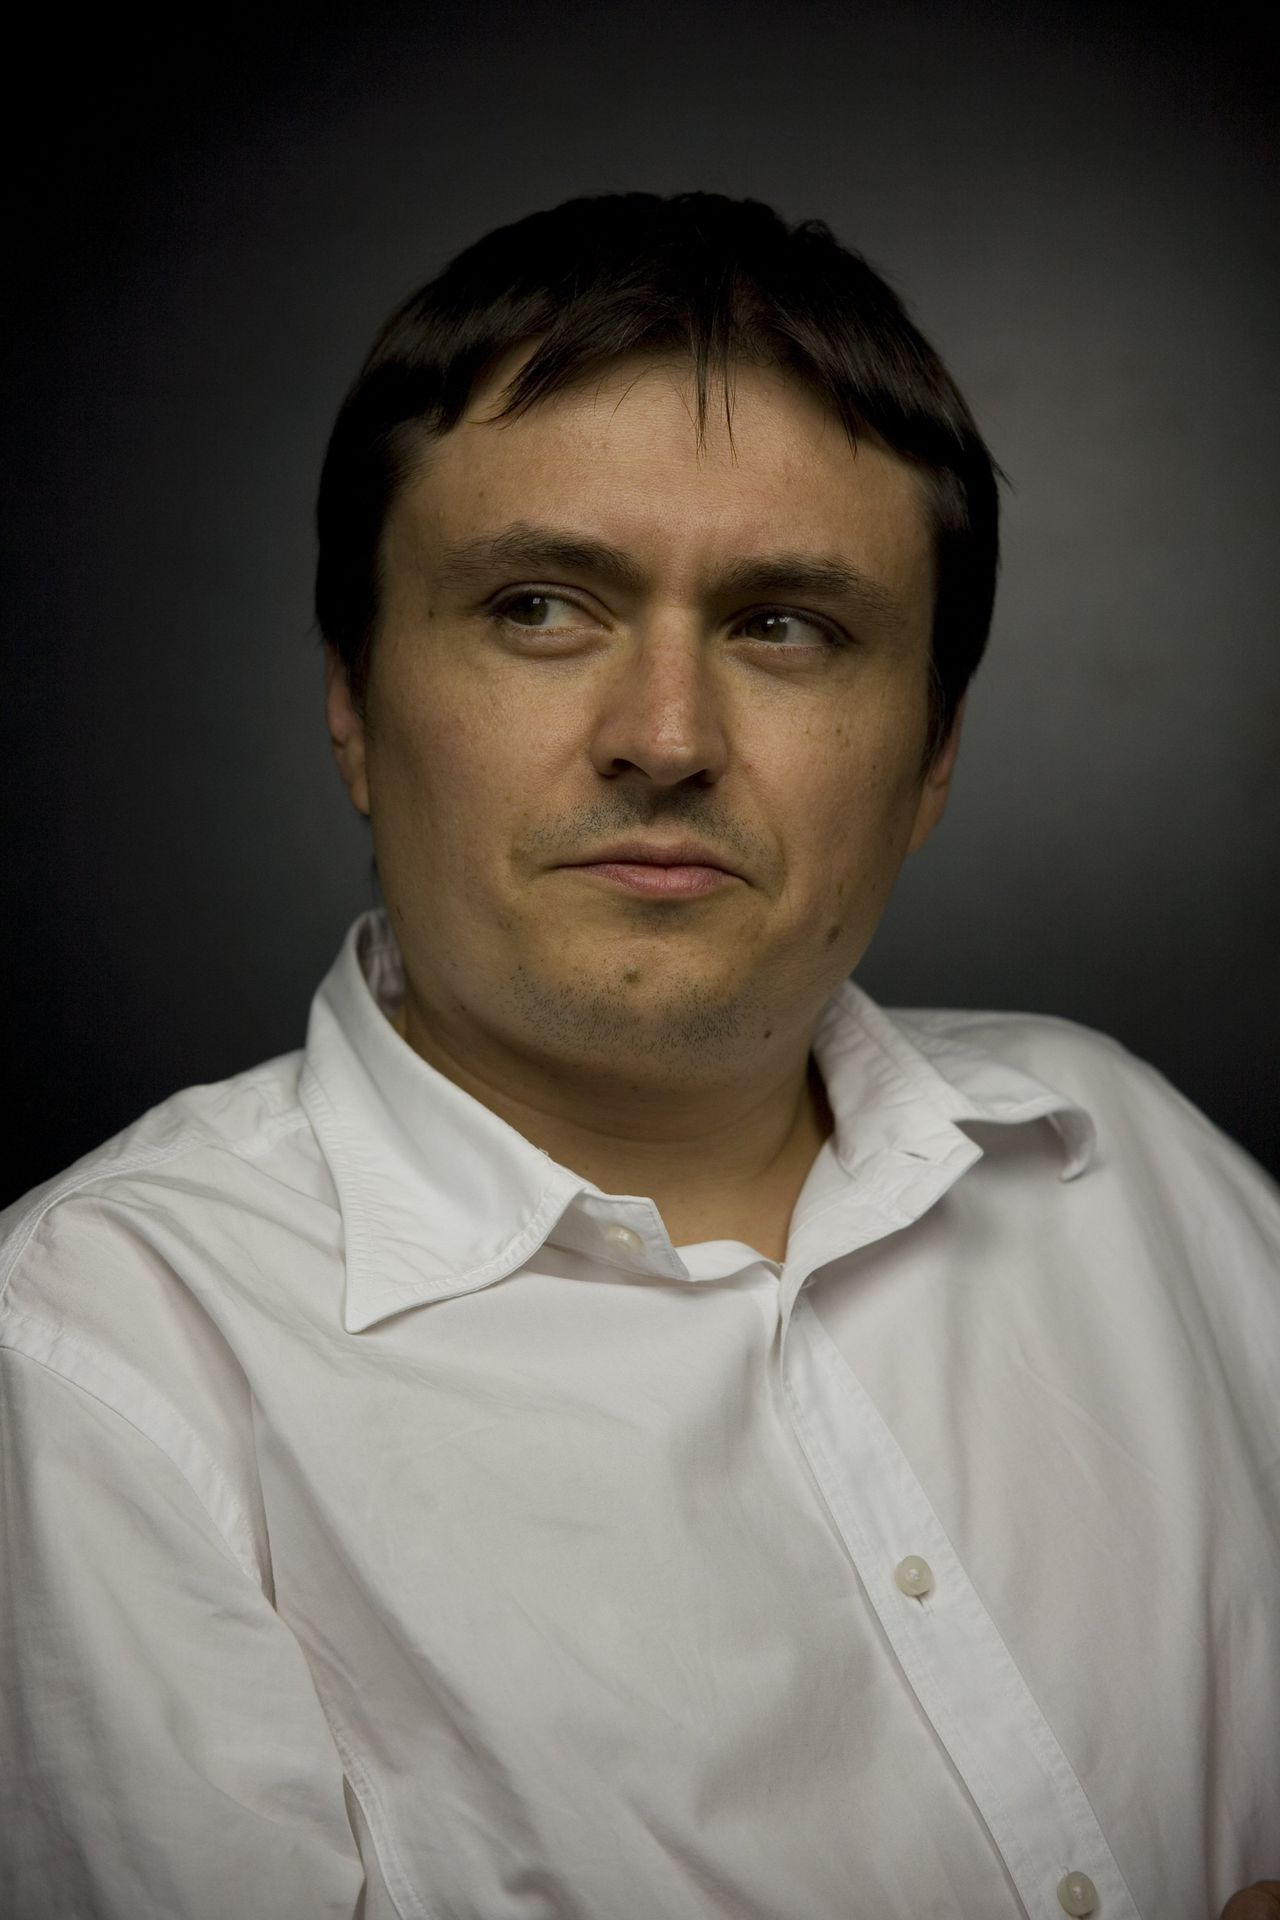 Romanian director Cristian Mungiu poses for portraits at the 66th edition of the Venice Film Festival in Venice, Italy, Friday, Sept. 11, 2009. (AP Photo/Arash Radpour)